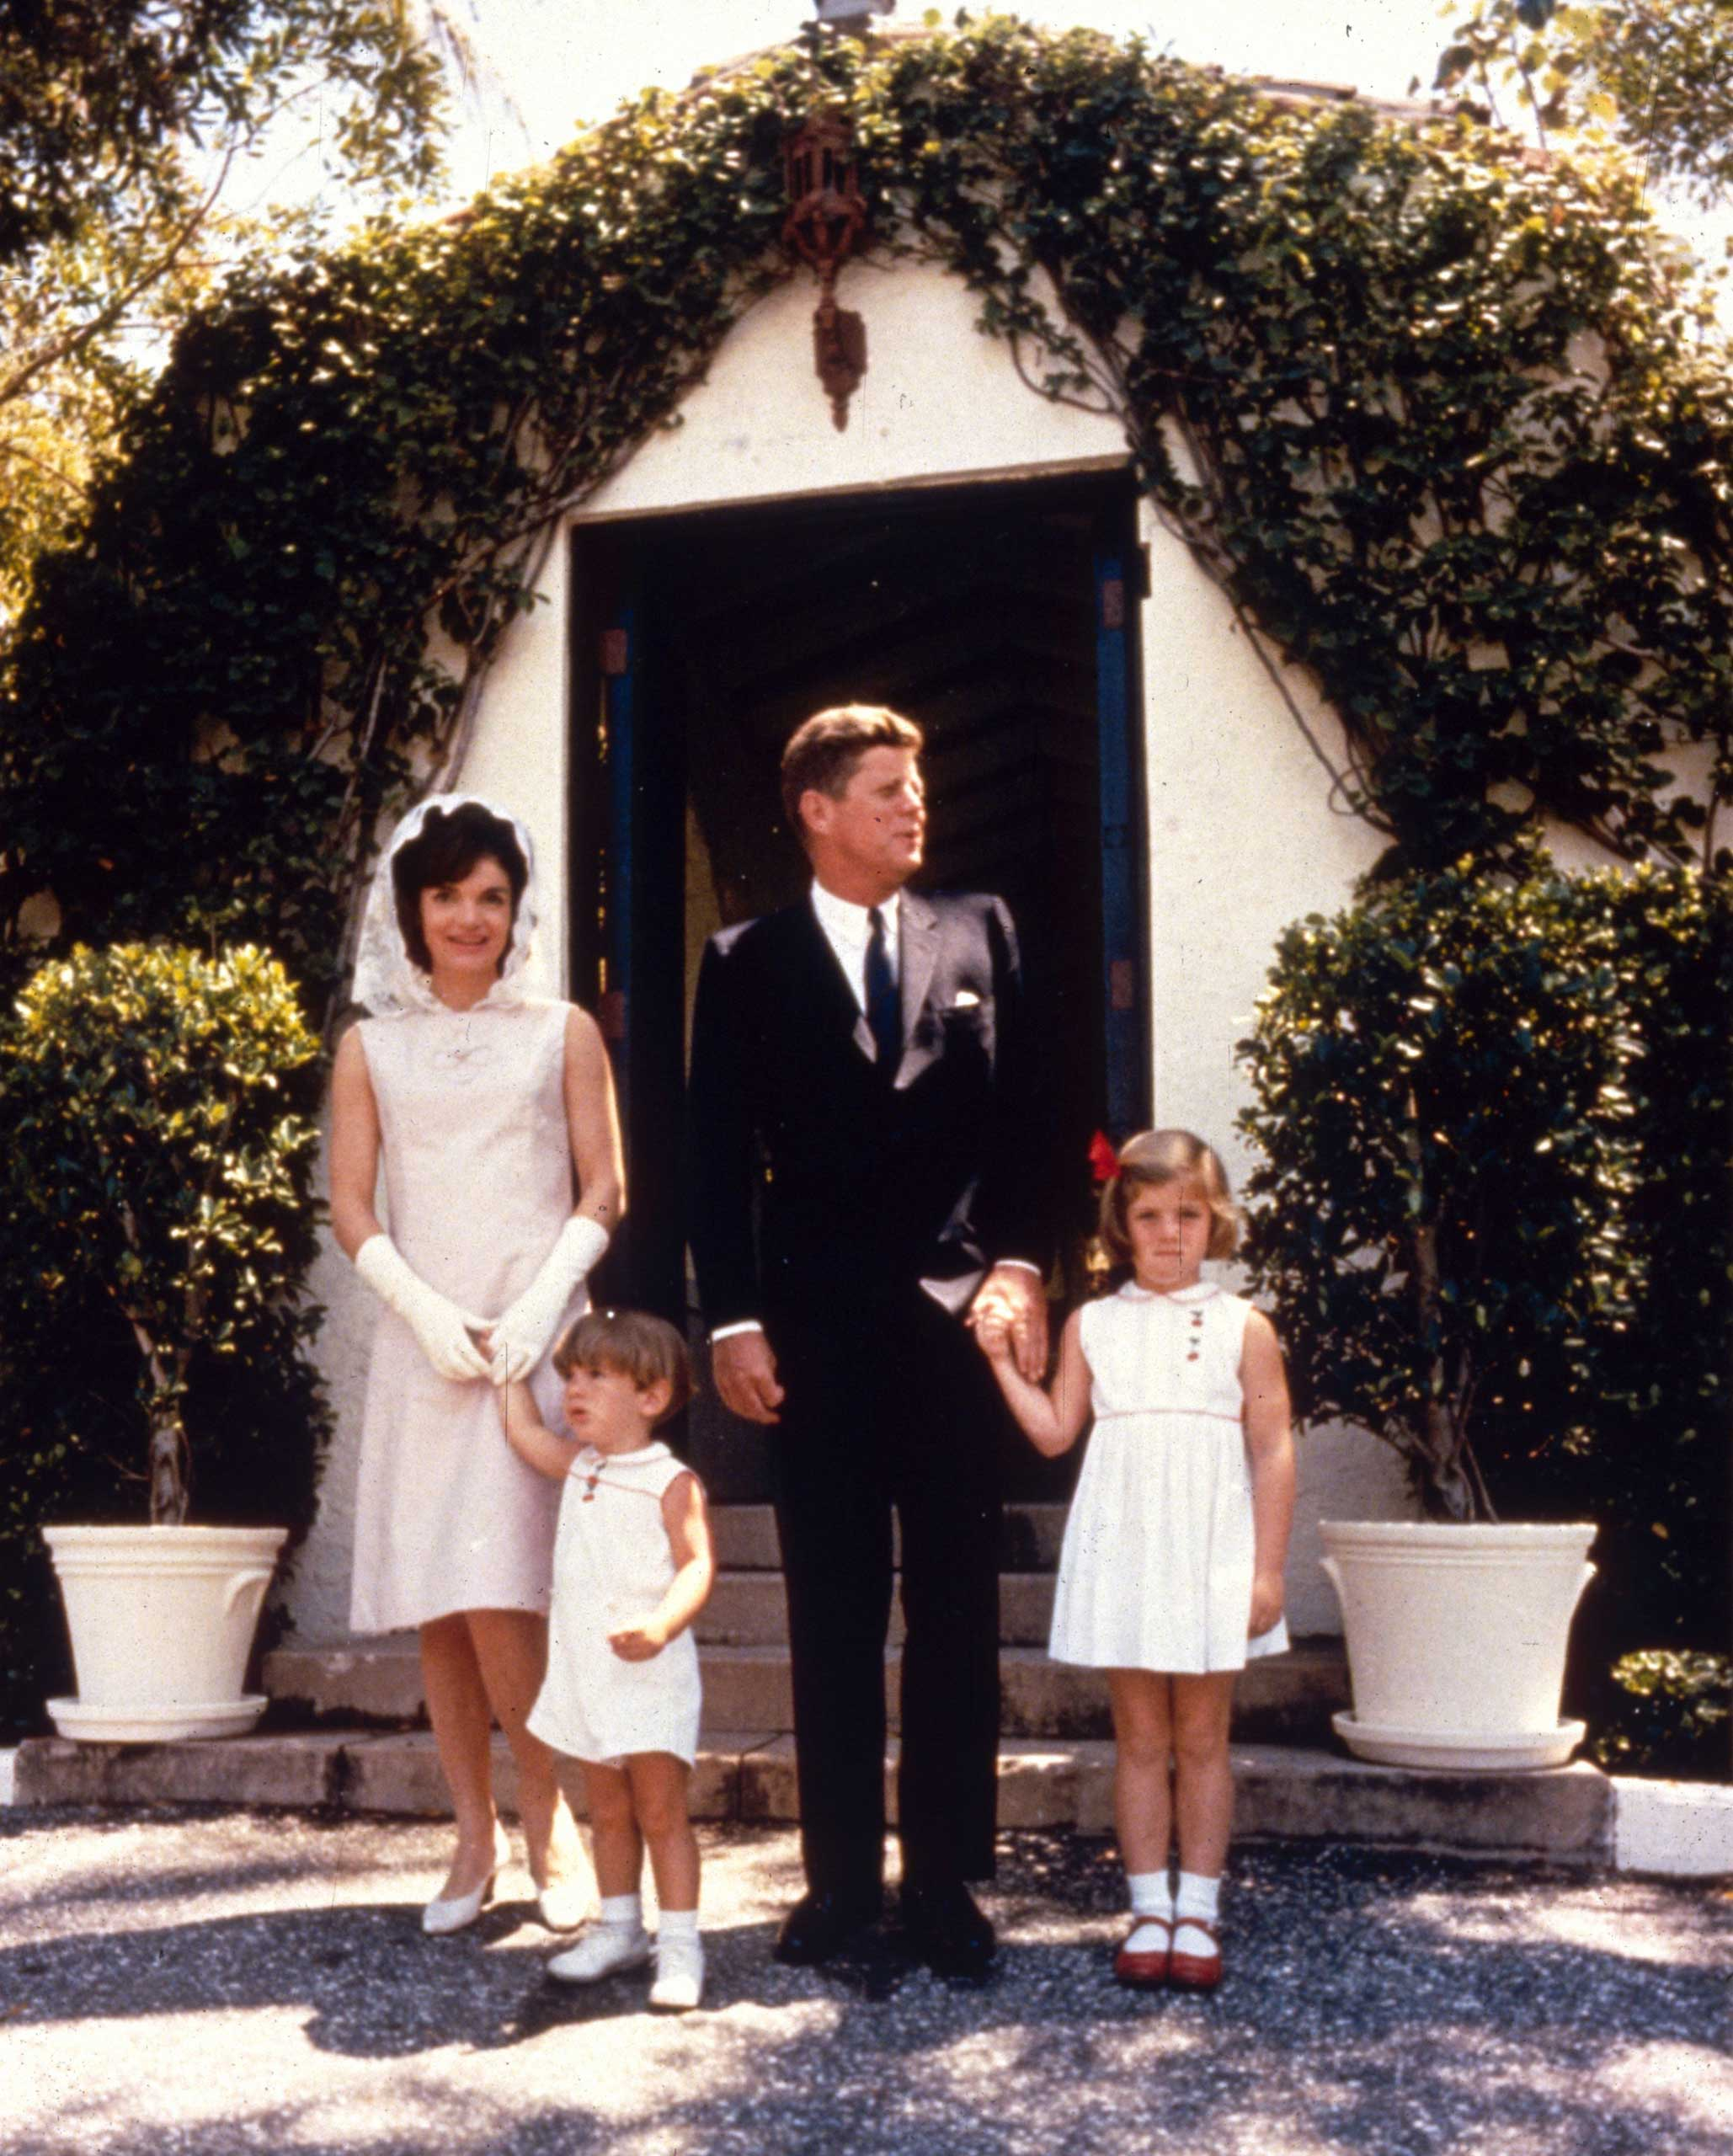 Pictured here on Easter Sunday 1963: John F. and Jacqueline Kennedy with their two children, John Jr. (left), who would become a publisher and die in a plane crash in 1999, and Caroline (right), an attorney, writer, and U.S. Ambassador to Japan. The Kennedy clan also includes Ted Kennedy, who served in the U.S. Senate until his death in 2009, Robert Kennedy Jr., a prominent environmental activist, Joseph P. Kennedy III, who was elected to Congress in 2012, and many other prominent Americans.